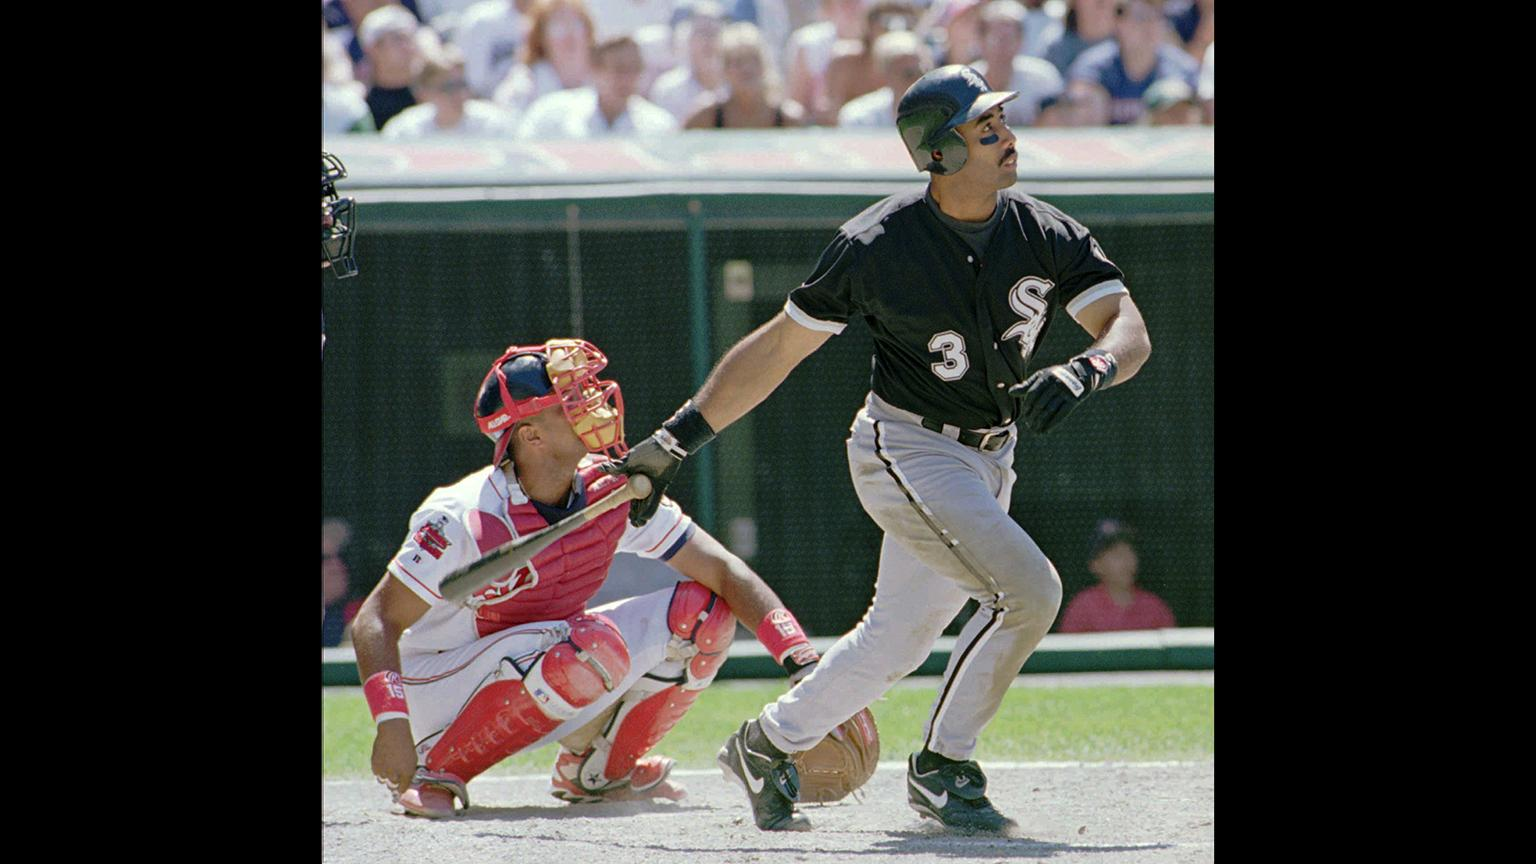 In this July 6, 1996, file photo, Chicago White Sox's Harold Baines (3) watches his ninth inning solo home run head for the center field seats during the White Sox's 3-2 win over the Cleveland Indians. (Jeff Glidden / AP File Photo)